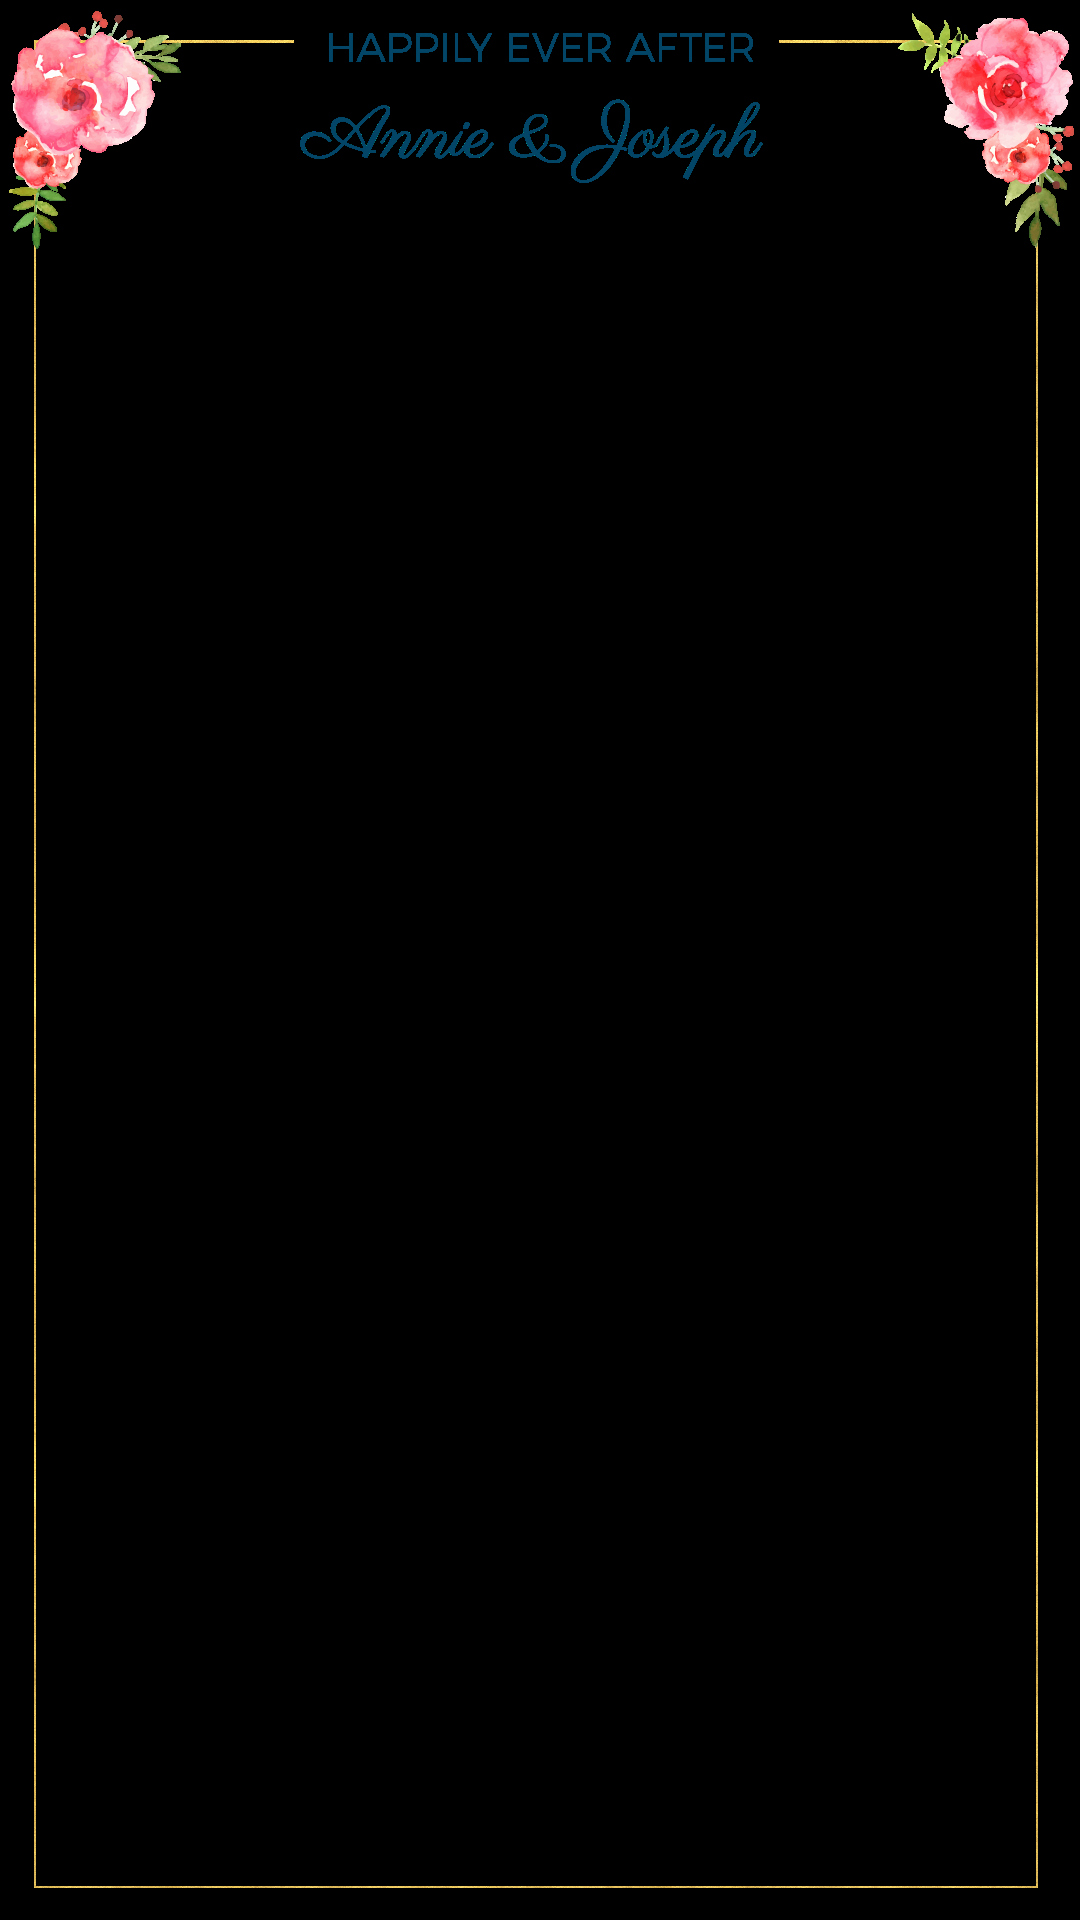 Geofilter Template Free Best Of Free Snapchat Filters for Your Jewish Wedding Ketubah